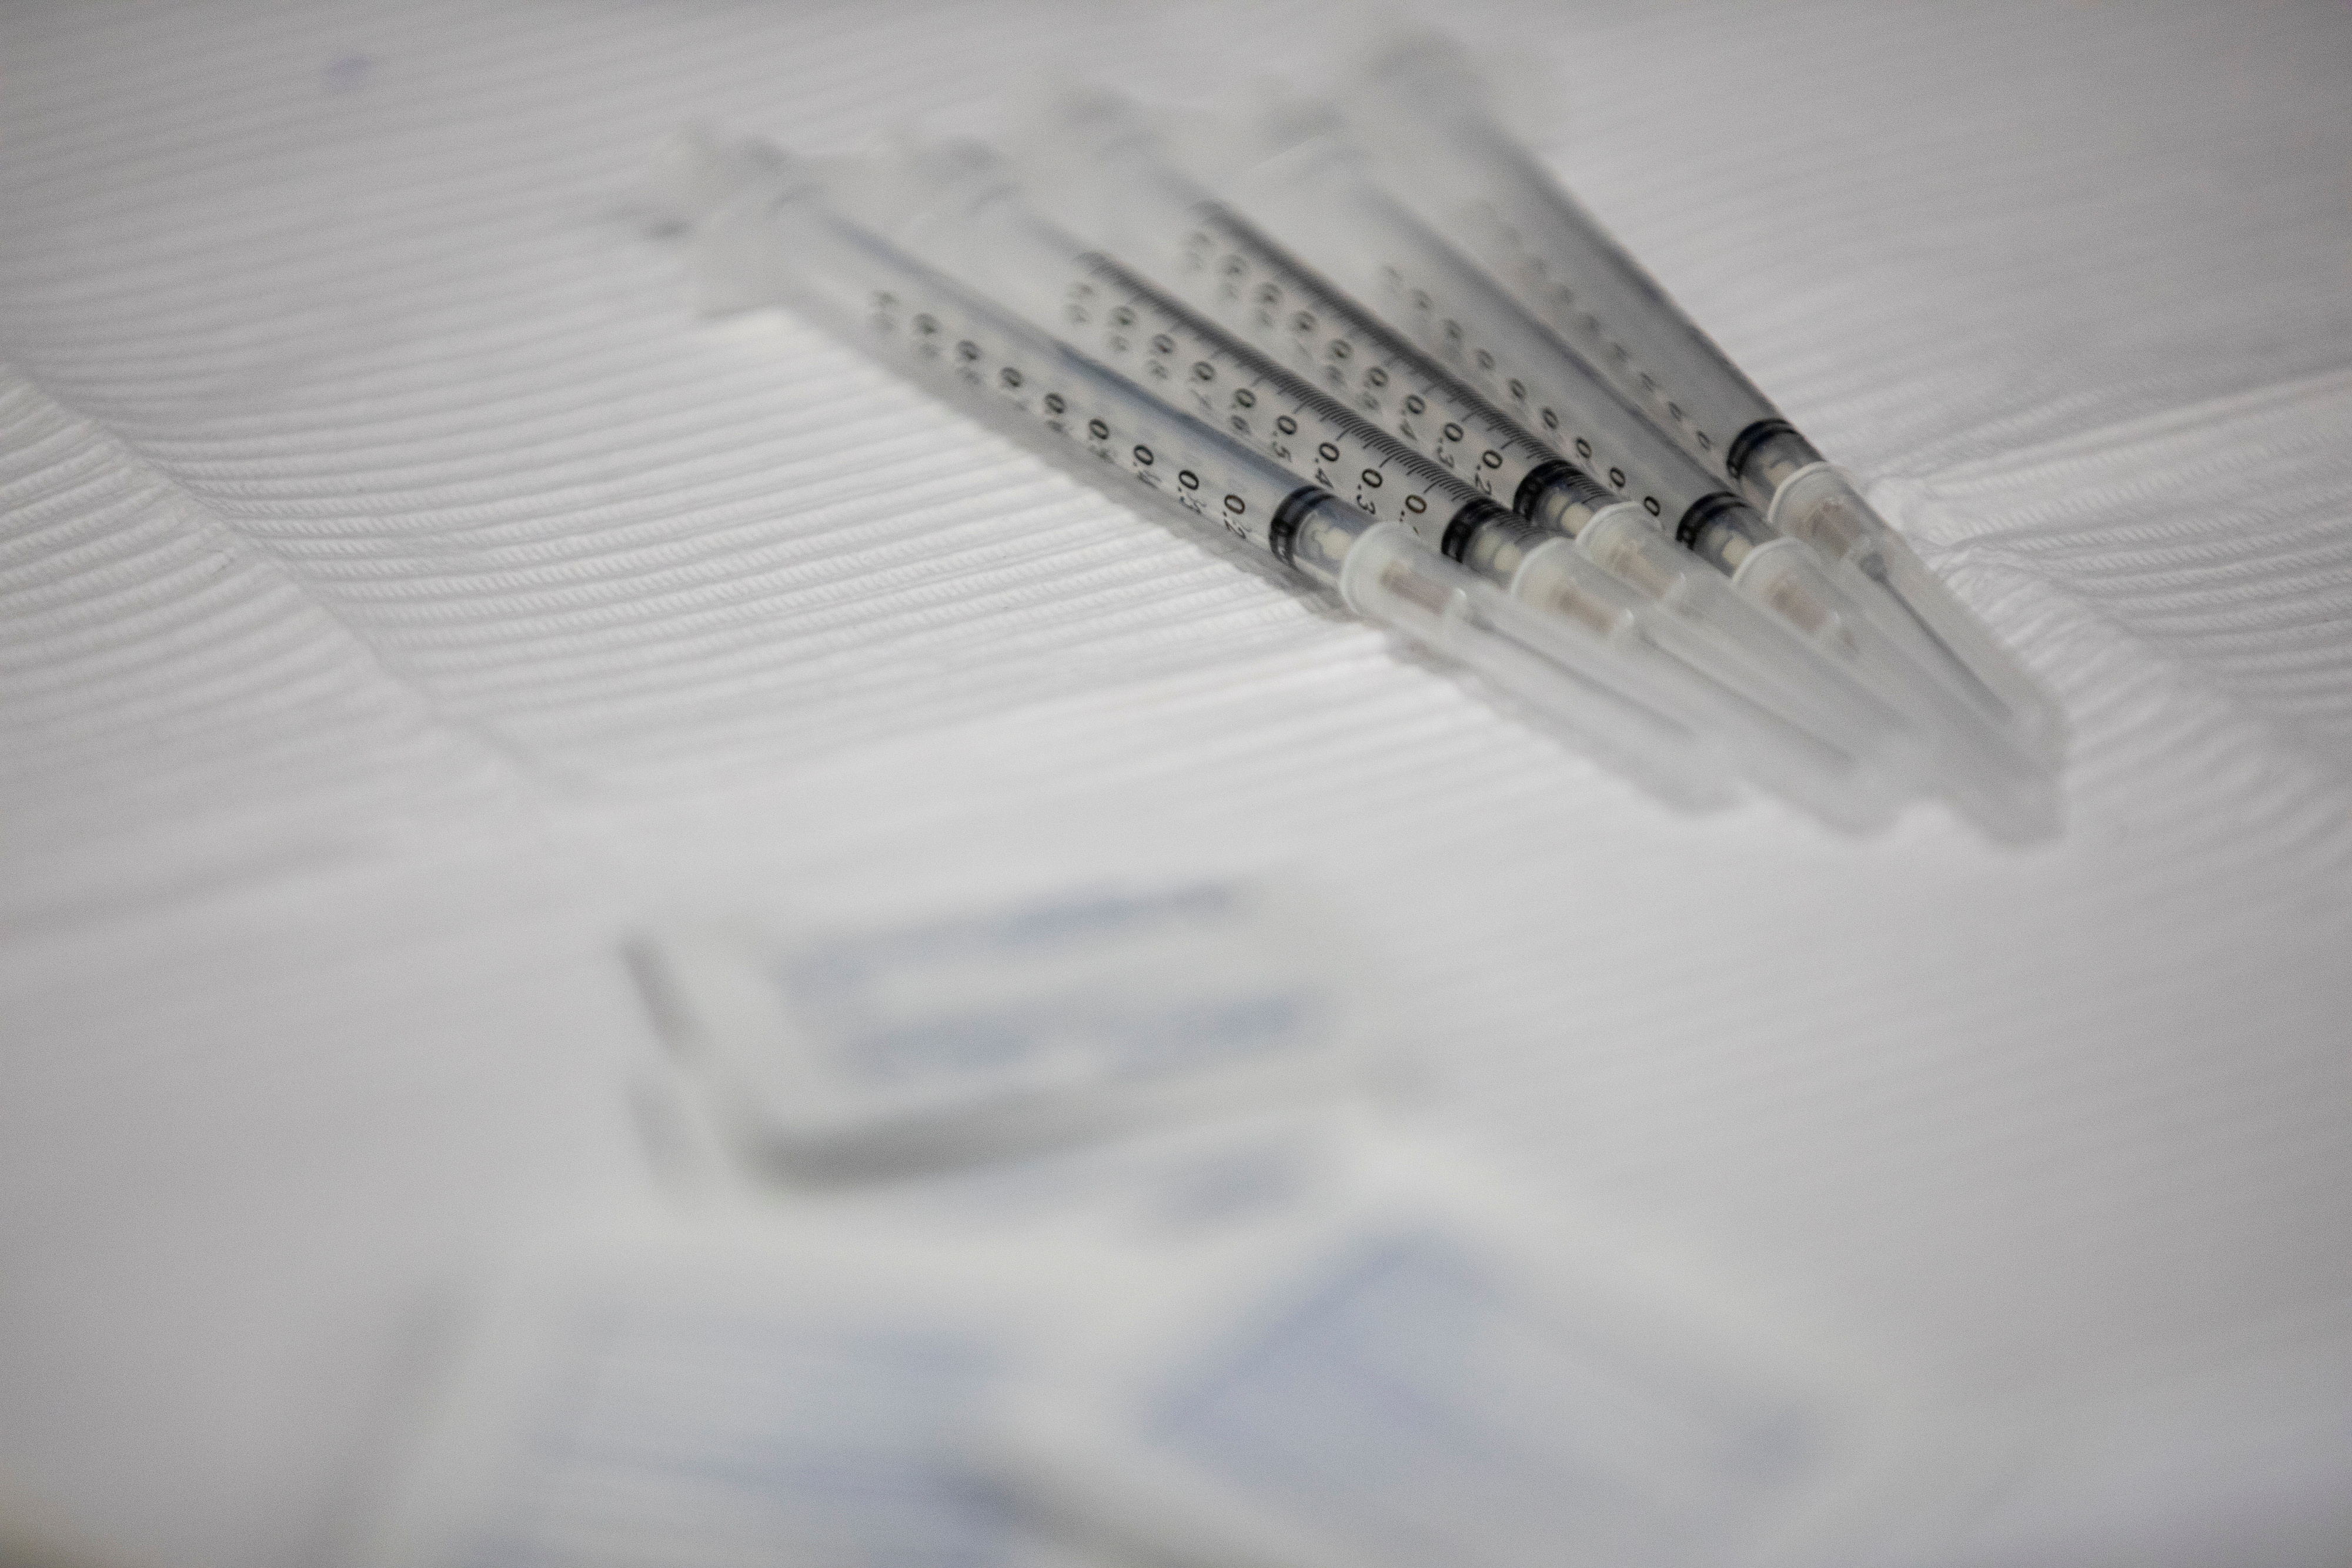 Syringes filled with the Pfizer-BioNTech vaccine sit on table during  vaccine clinic in Southfield, Michigan, U.S., September 29, 2021.  REUTERS/Emily Elconin